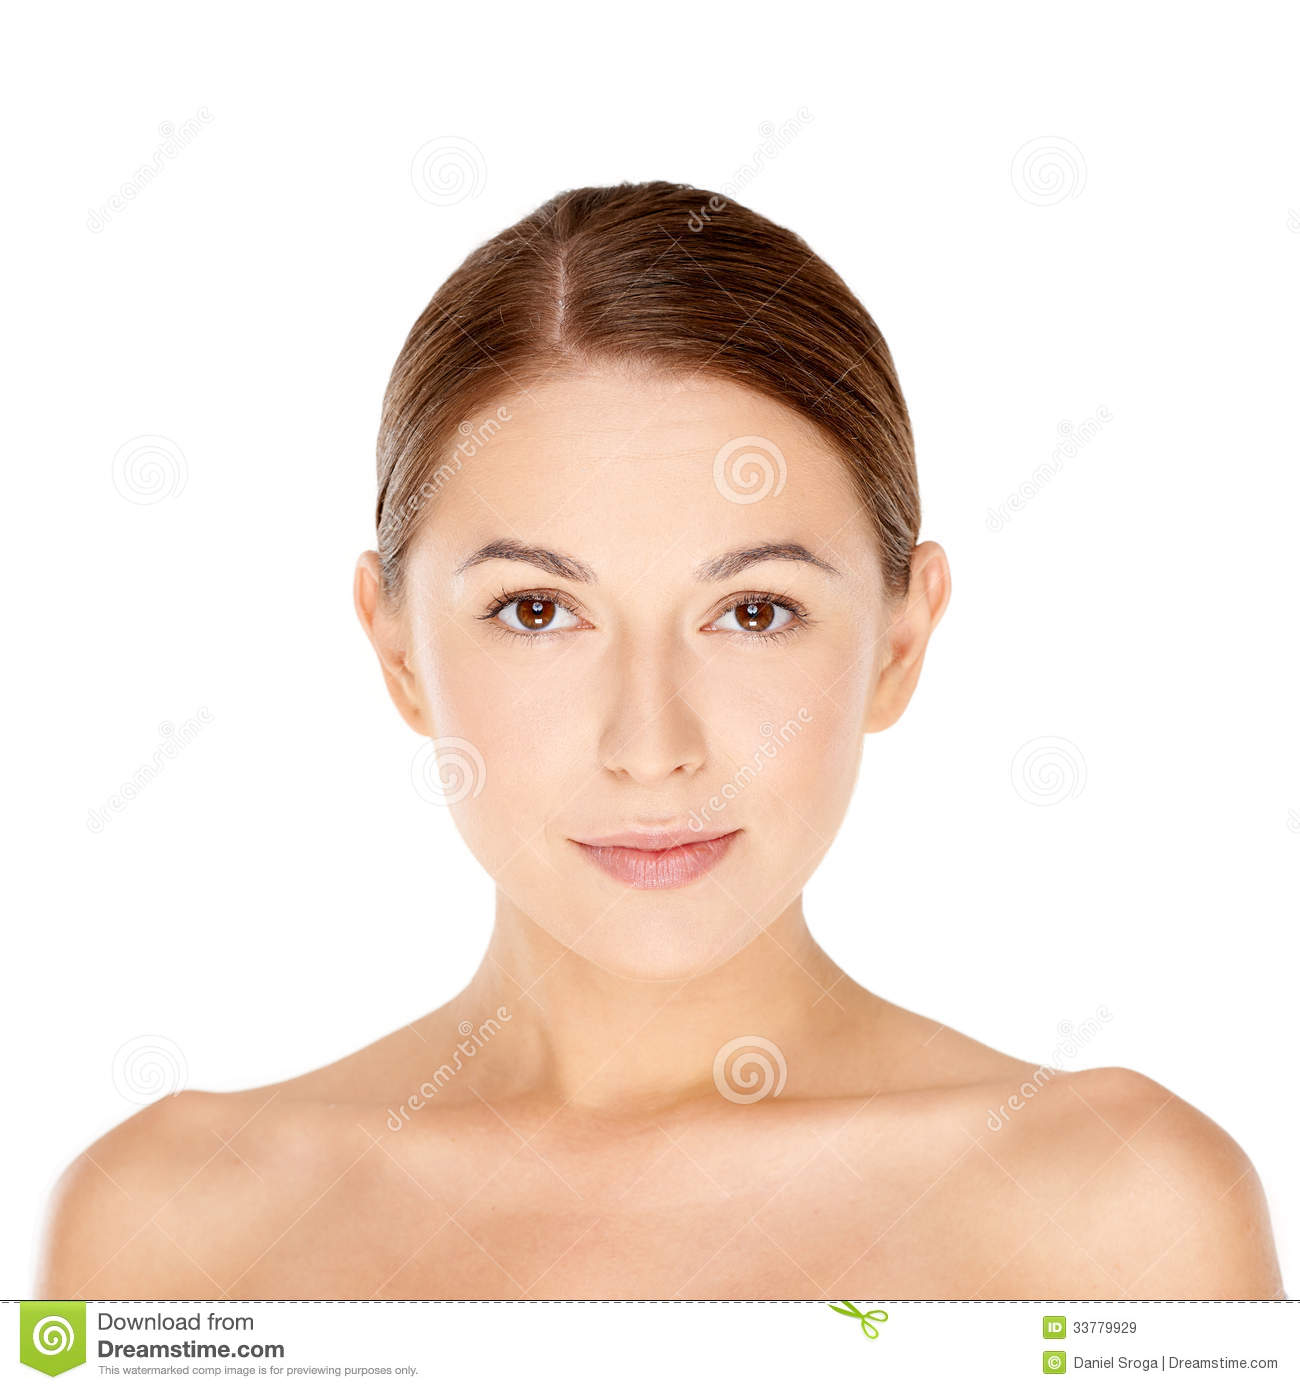 how to stay young and beautiful naturally